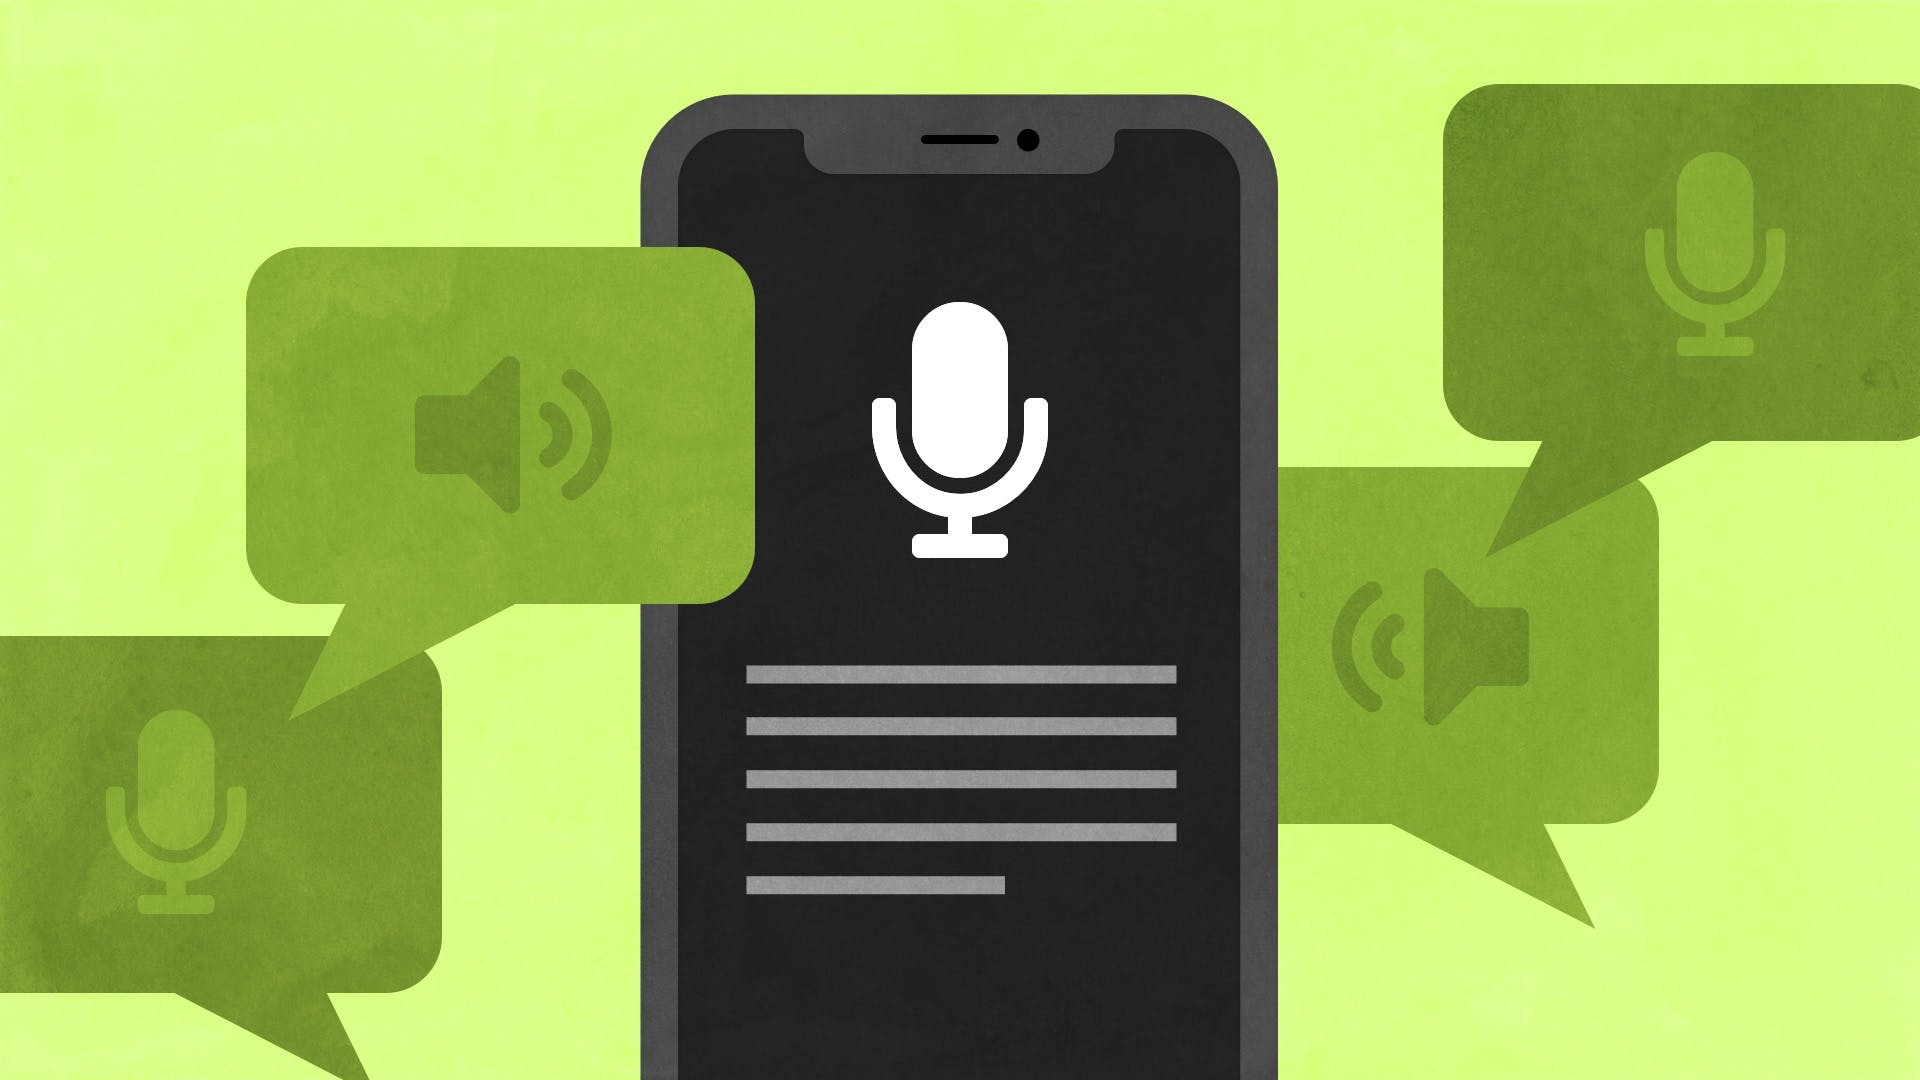 353 speech recognition and tts